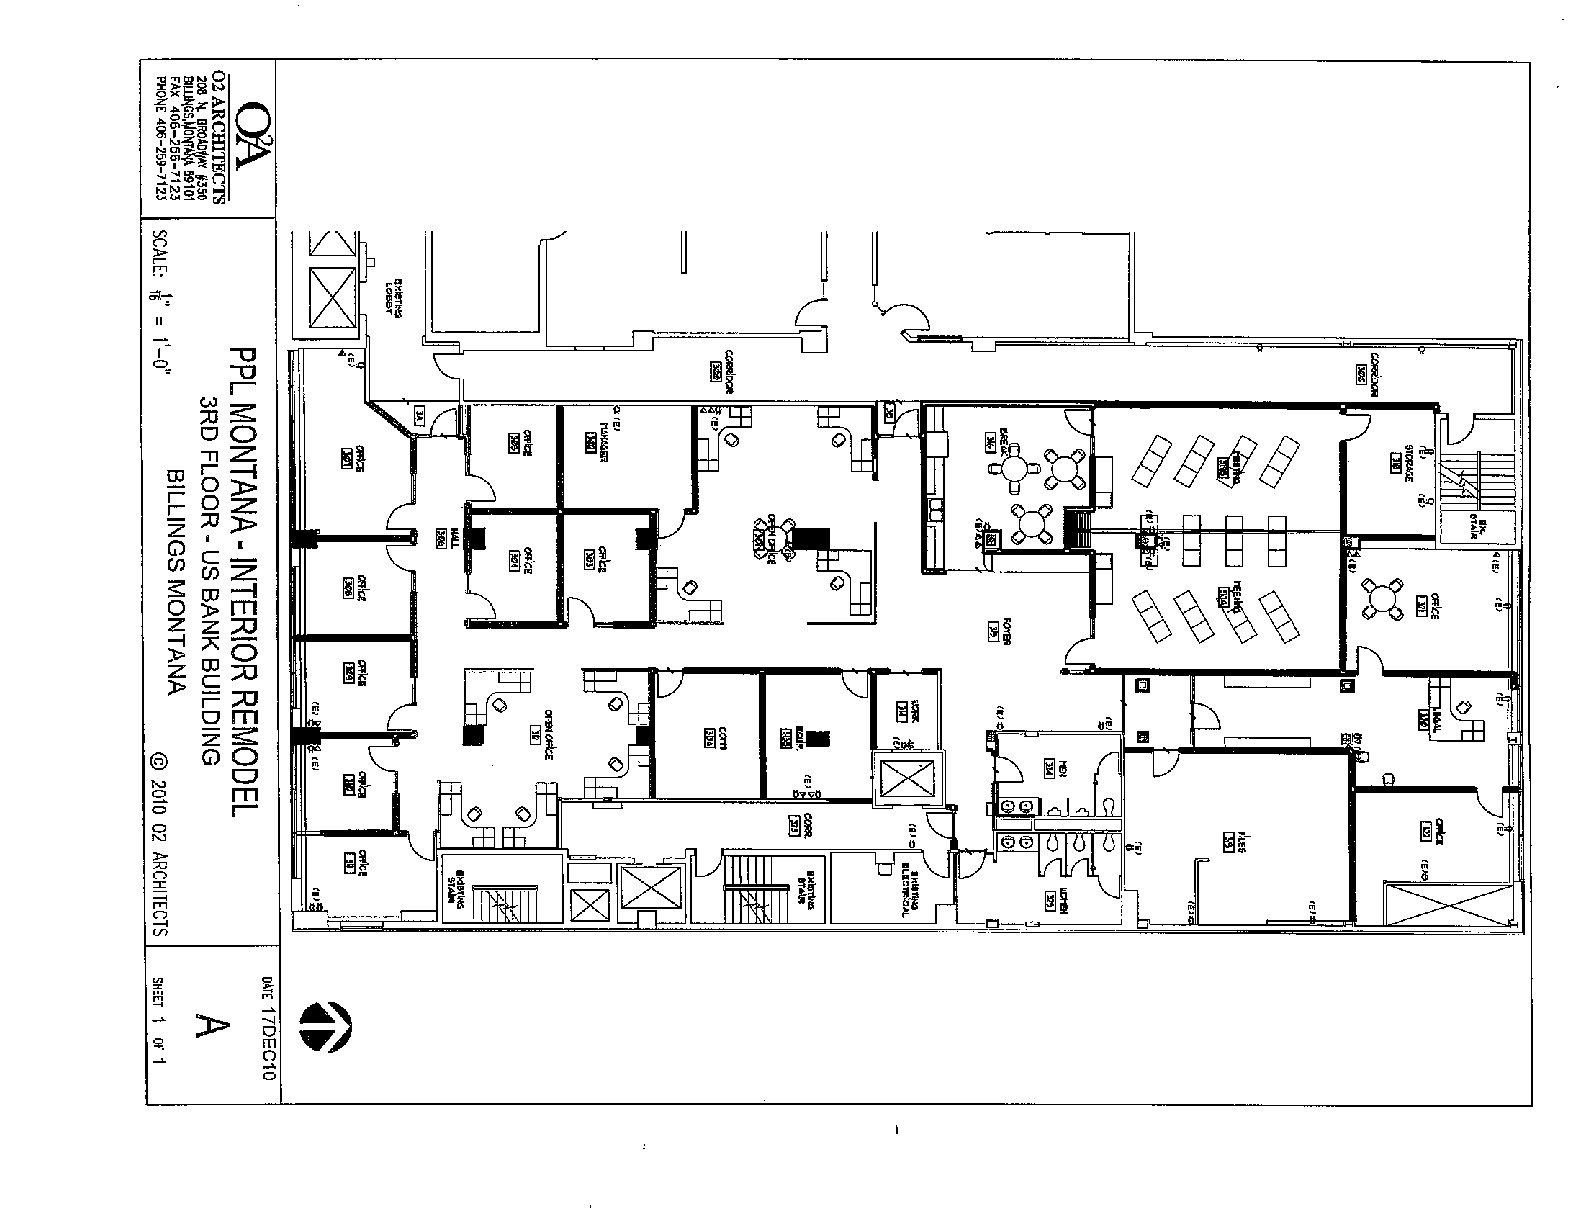 303 N Broadway Floor 3 plan